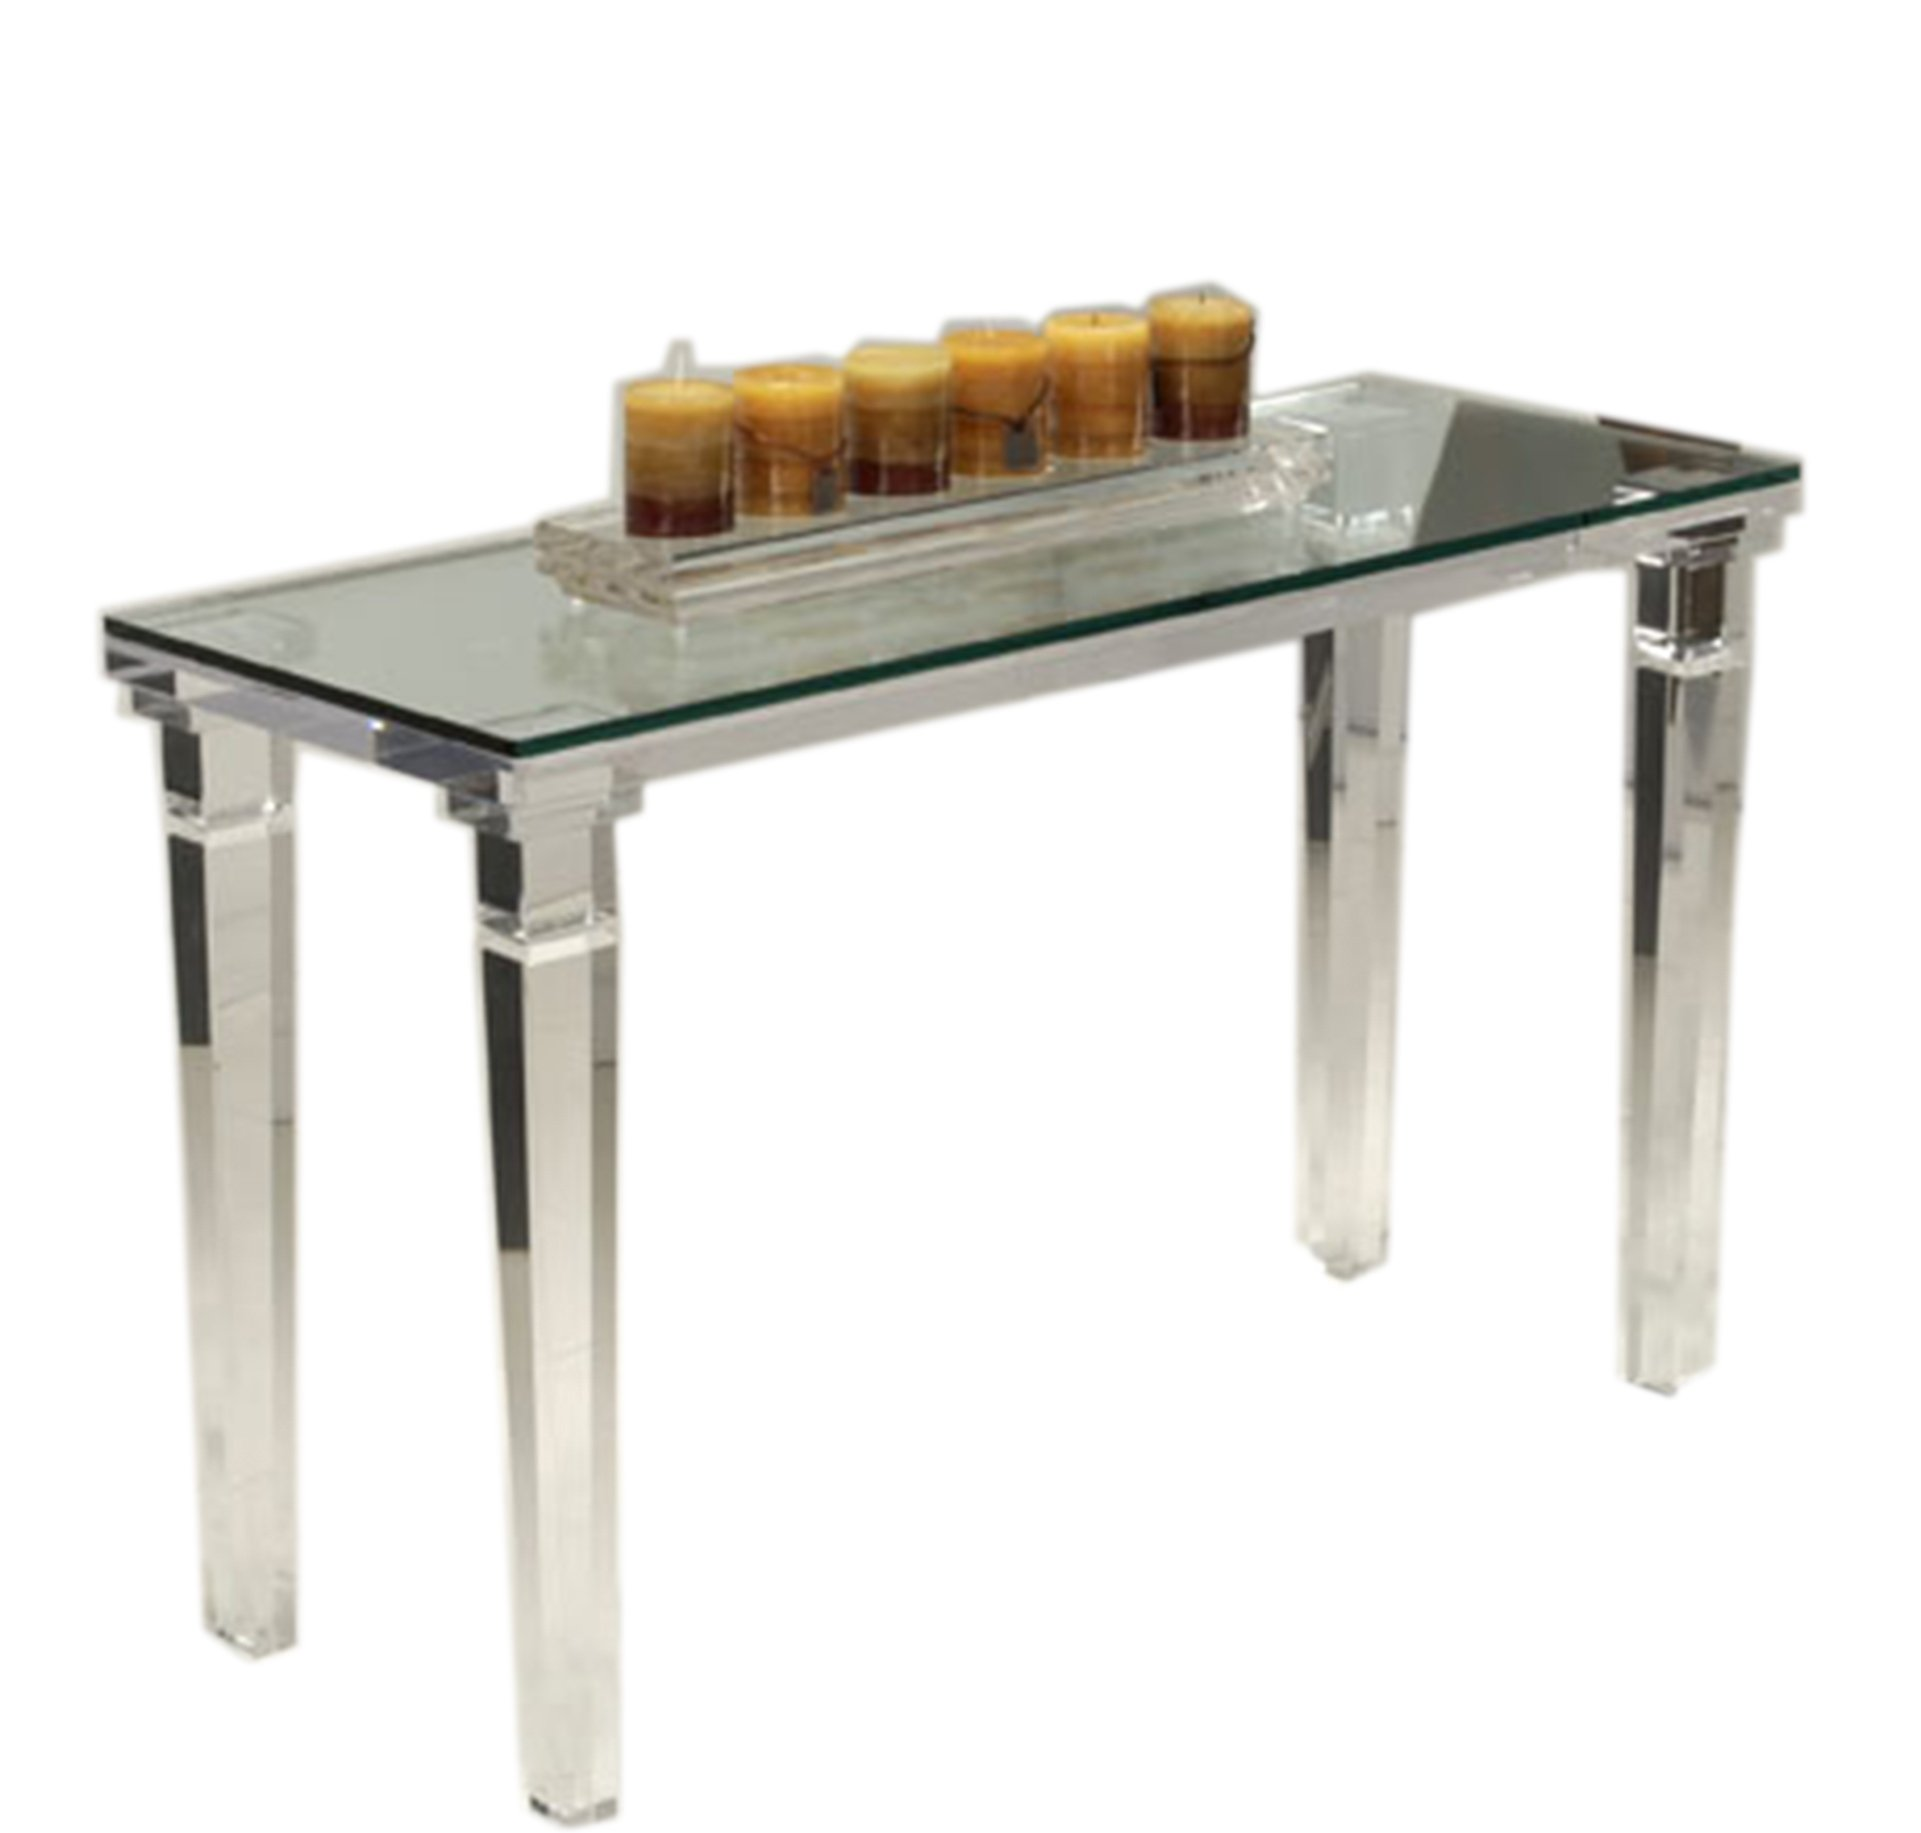 Shahrooz CHAT900-S-GT1848 Acrylic Chateau Console Table, Transparent